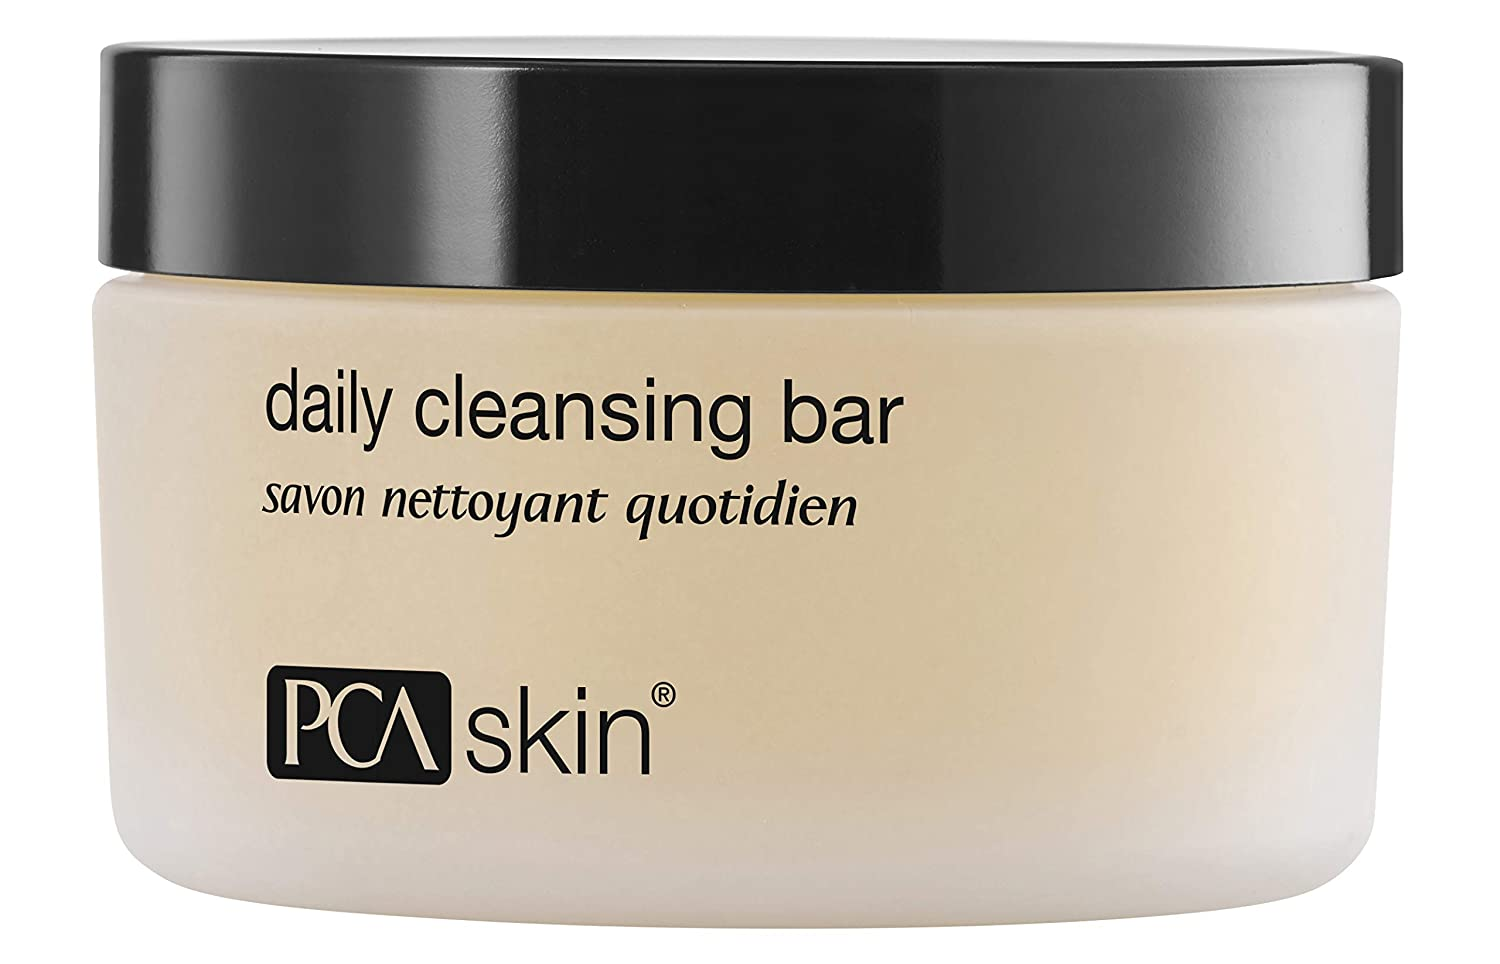 PCA SKIN Daily Cleansing Bar, Hydrating Cleanser for All Skin Types, 3.2 oz.: Premium Beauty